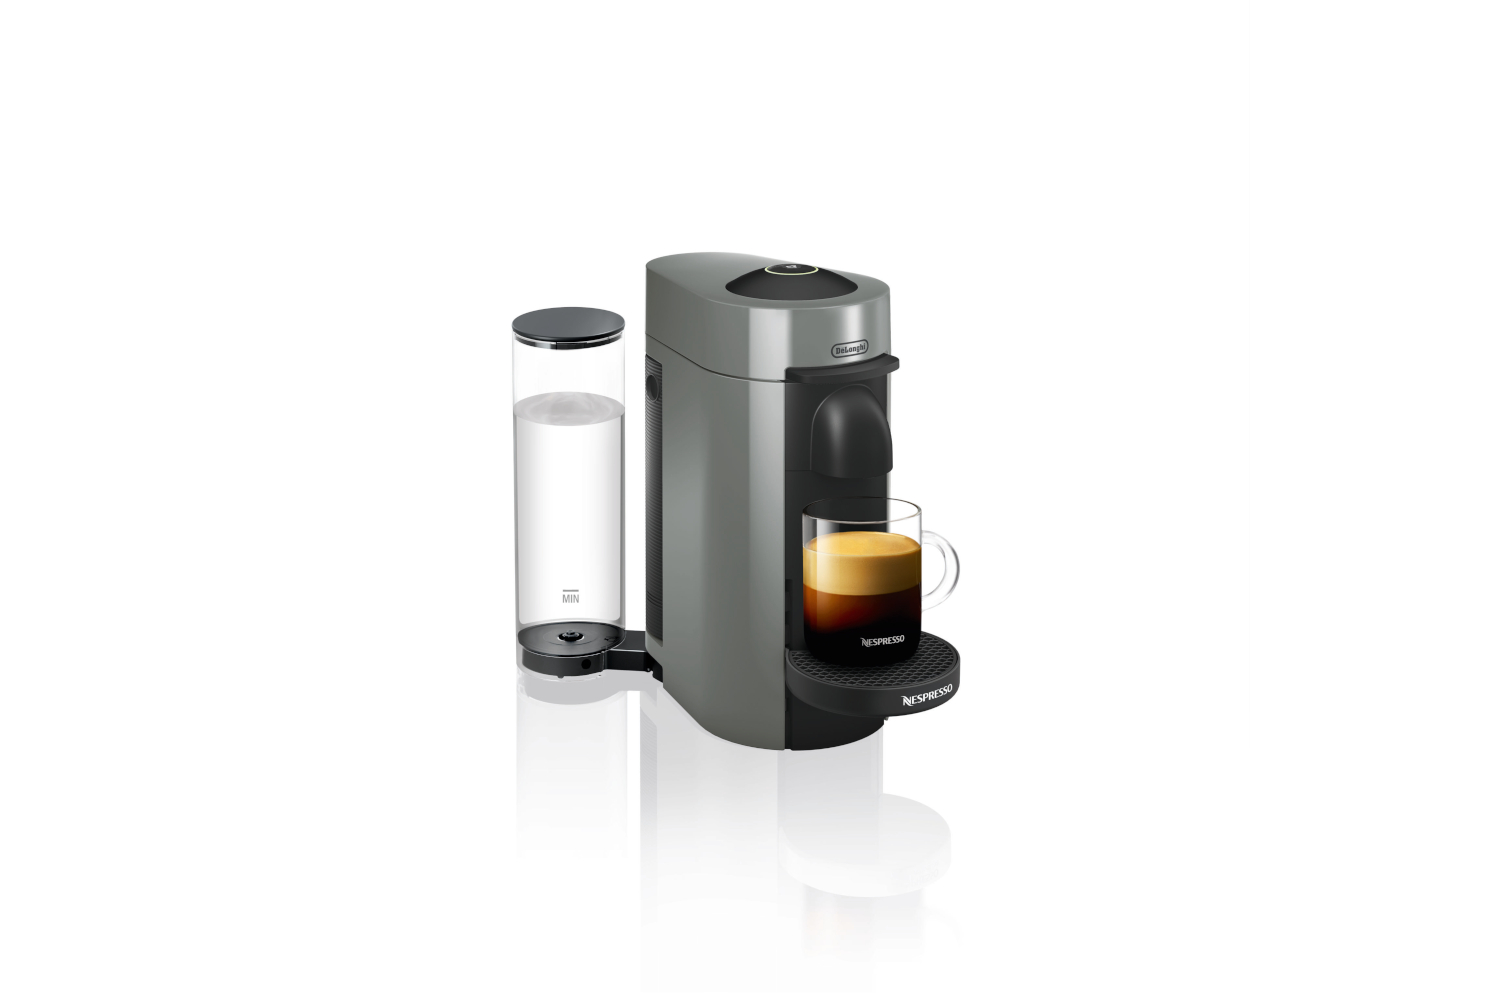 Nespresso VertuoPlus Coffee & Espresso Machine by De'Longhi - Grey